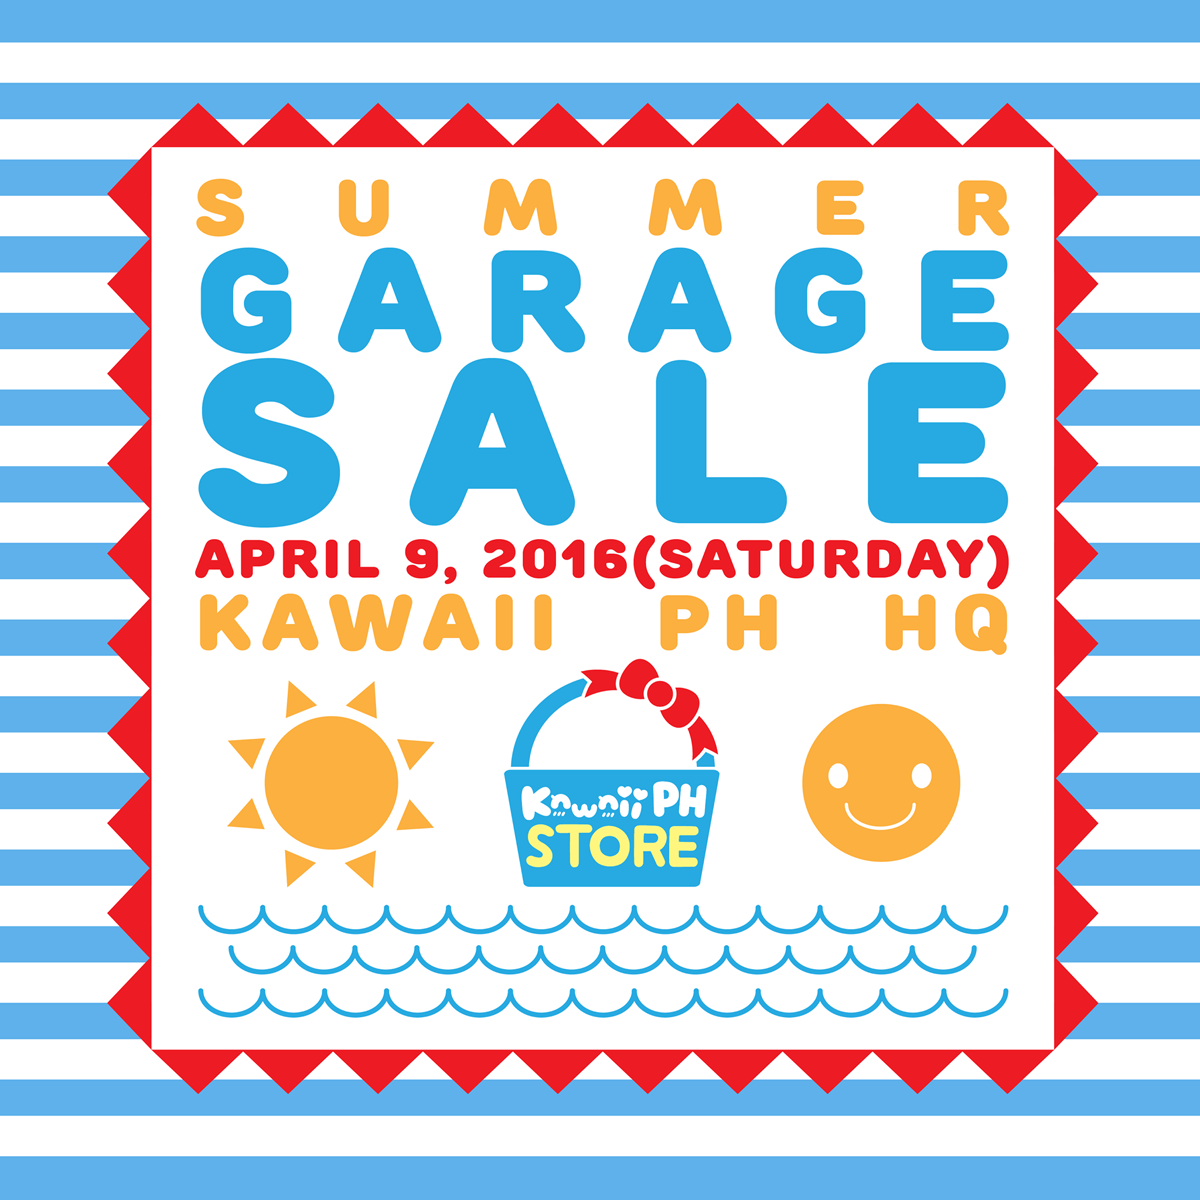 Kawaii PH Store Summer Garage Sale